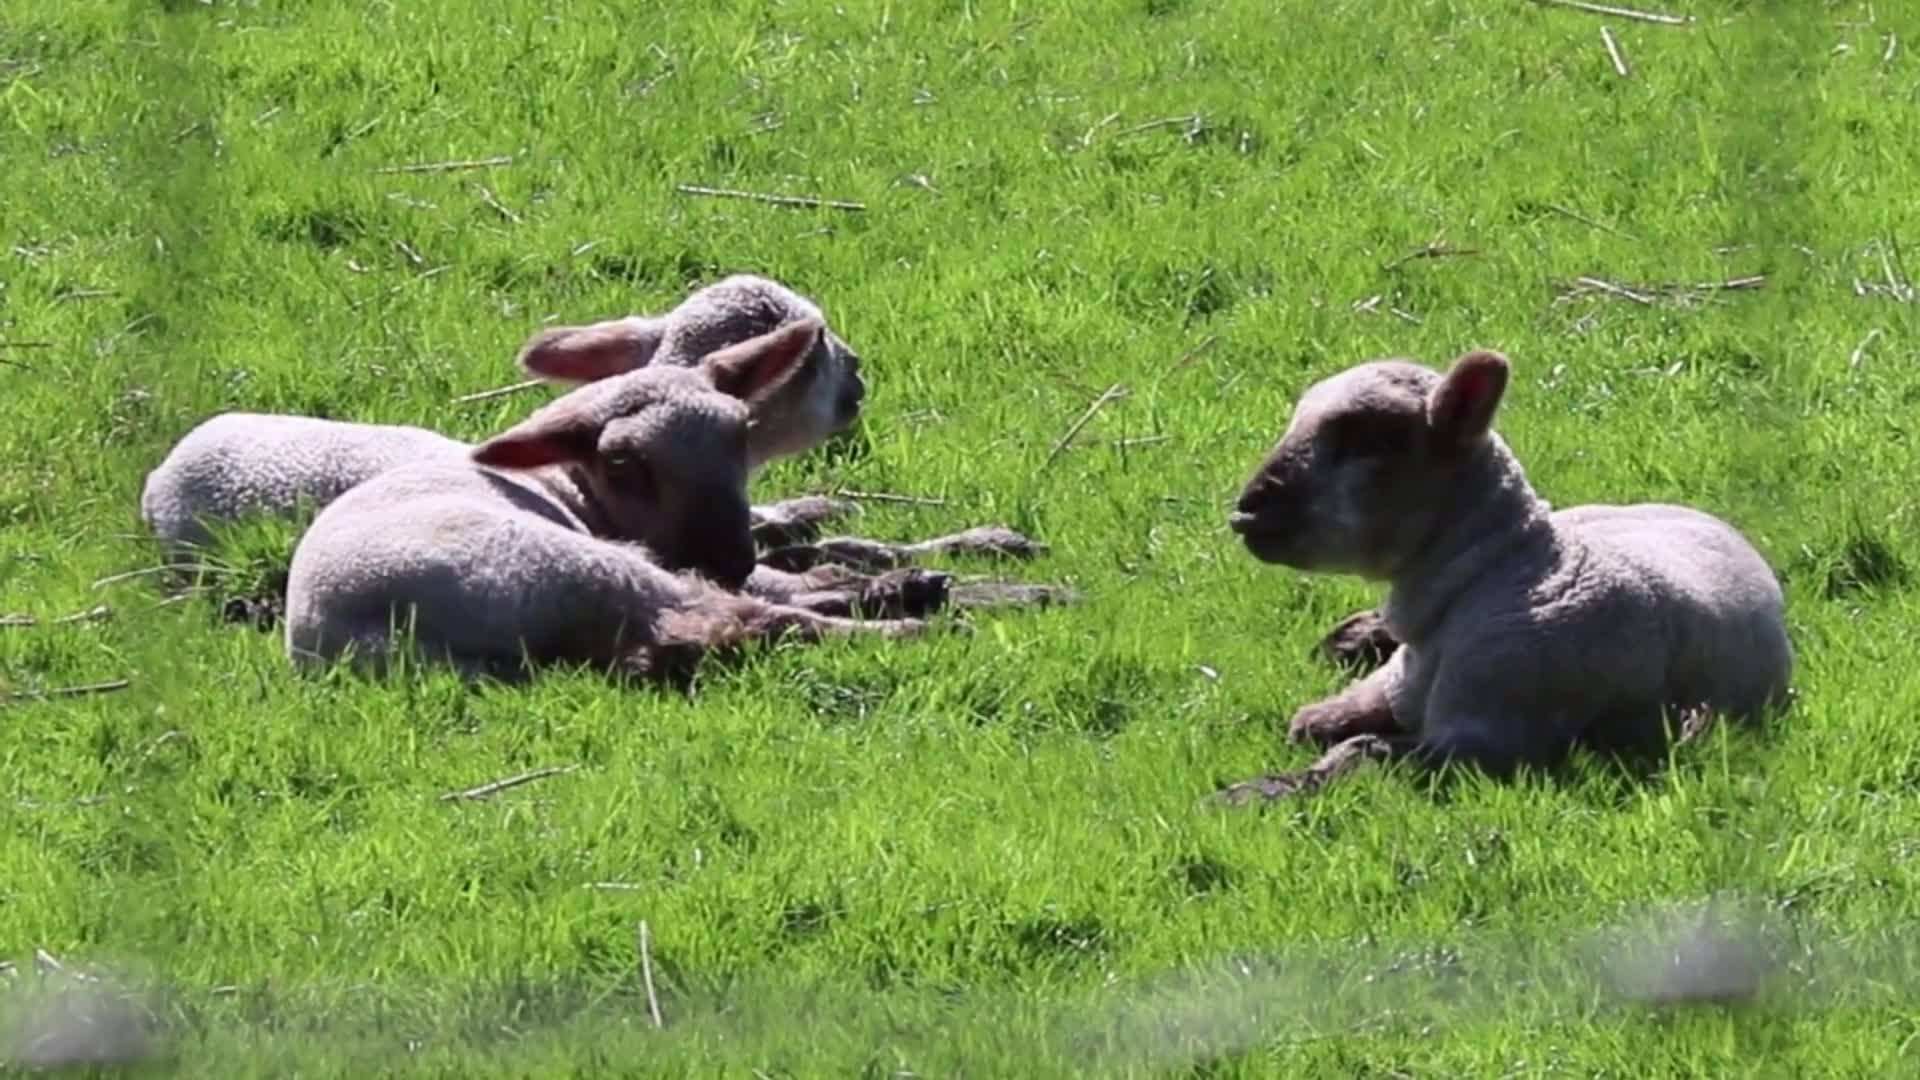 Sheep resting on ground